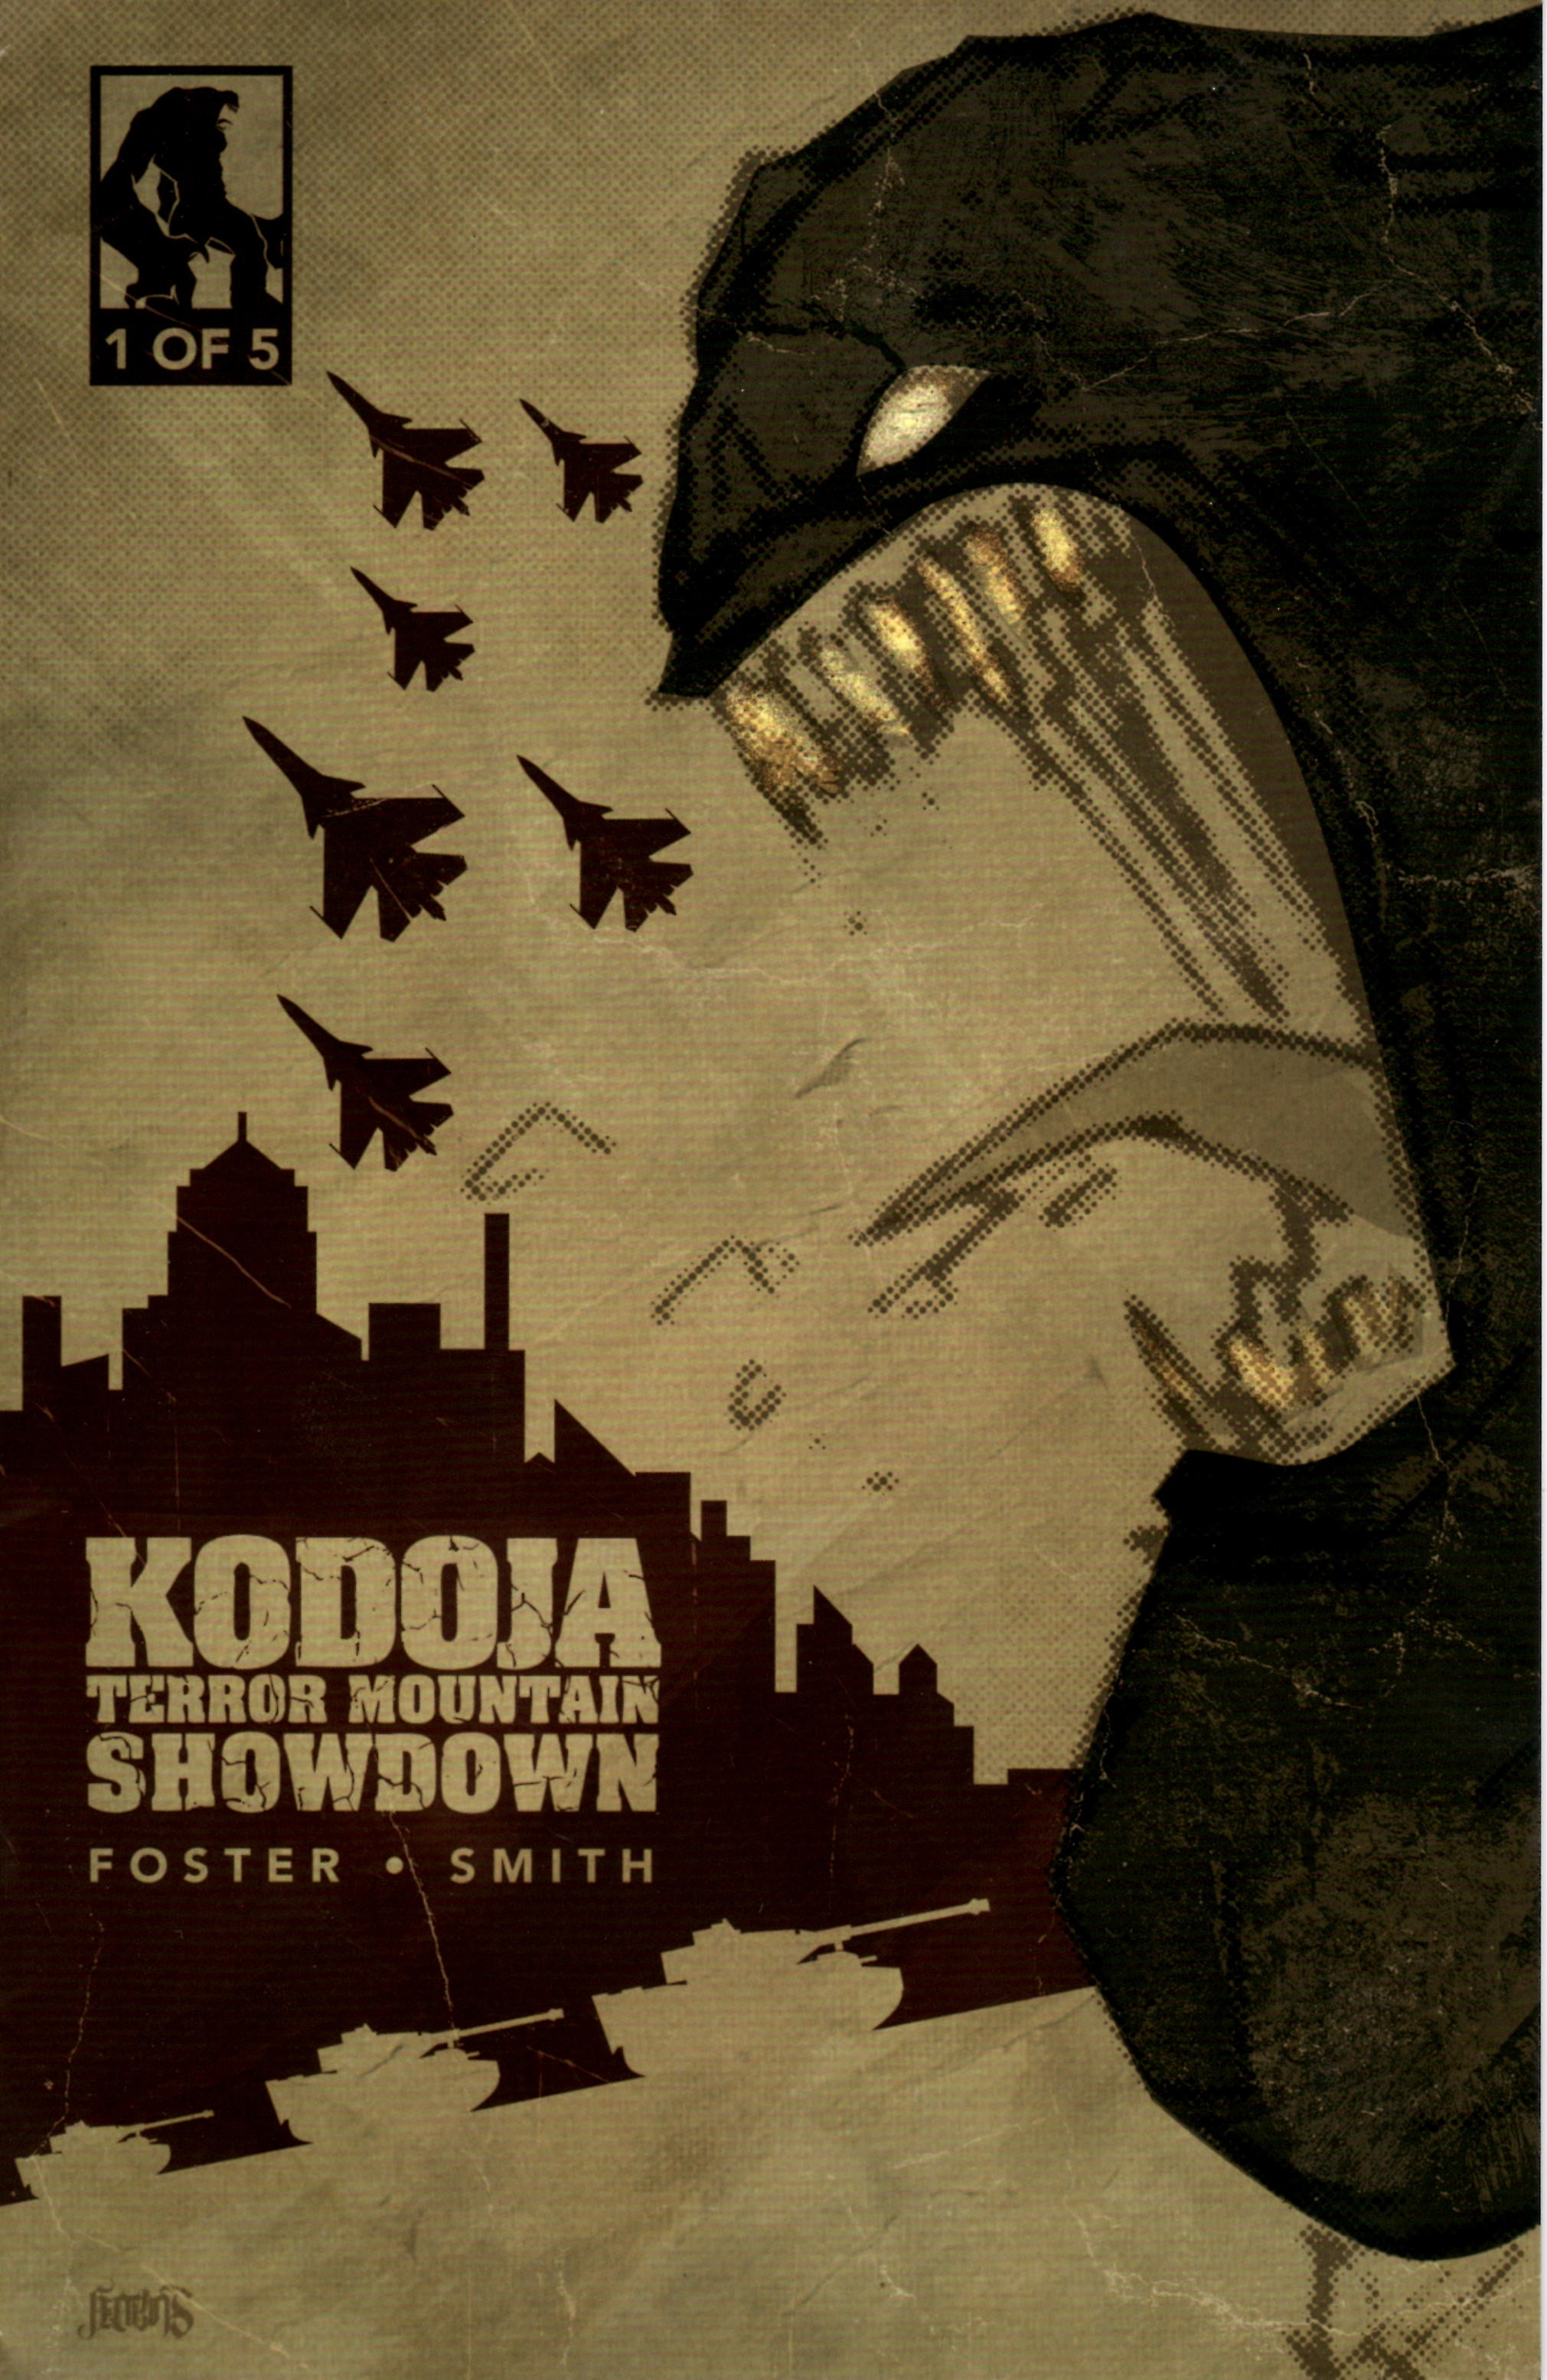 Kodoja: Terror Mountain Showdown Publisher: Self-published Writer: Keith Foster Artist: Rory Smith (cover by Elroy Jenkins) Editor/Art Director: Lance Pilgrim In the vein of Godzilla, Rodan, and Mothra comes Kodoja!...